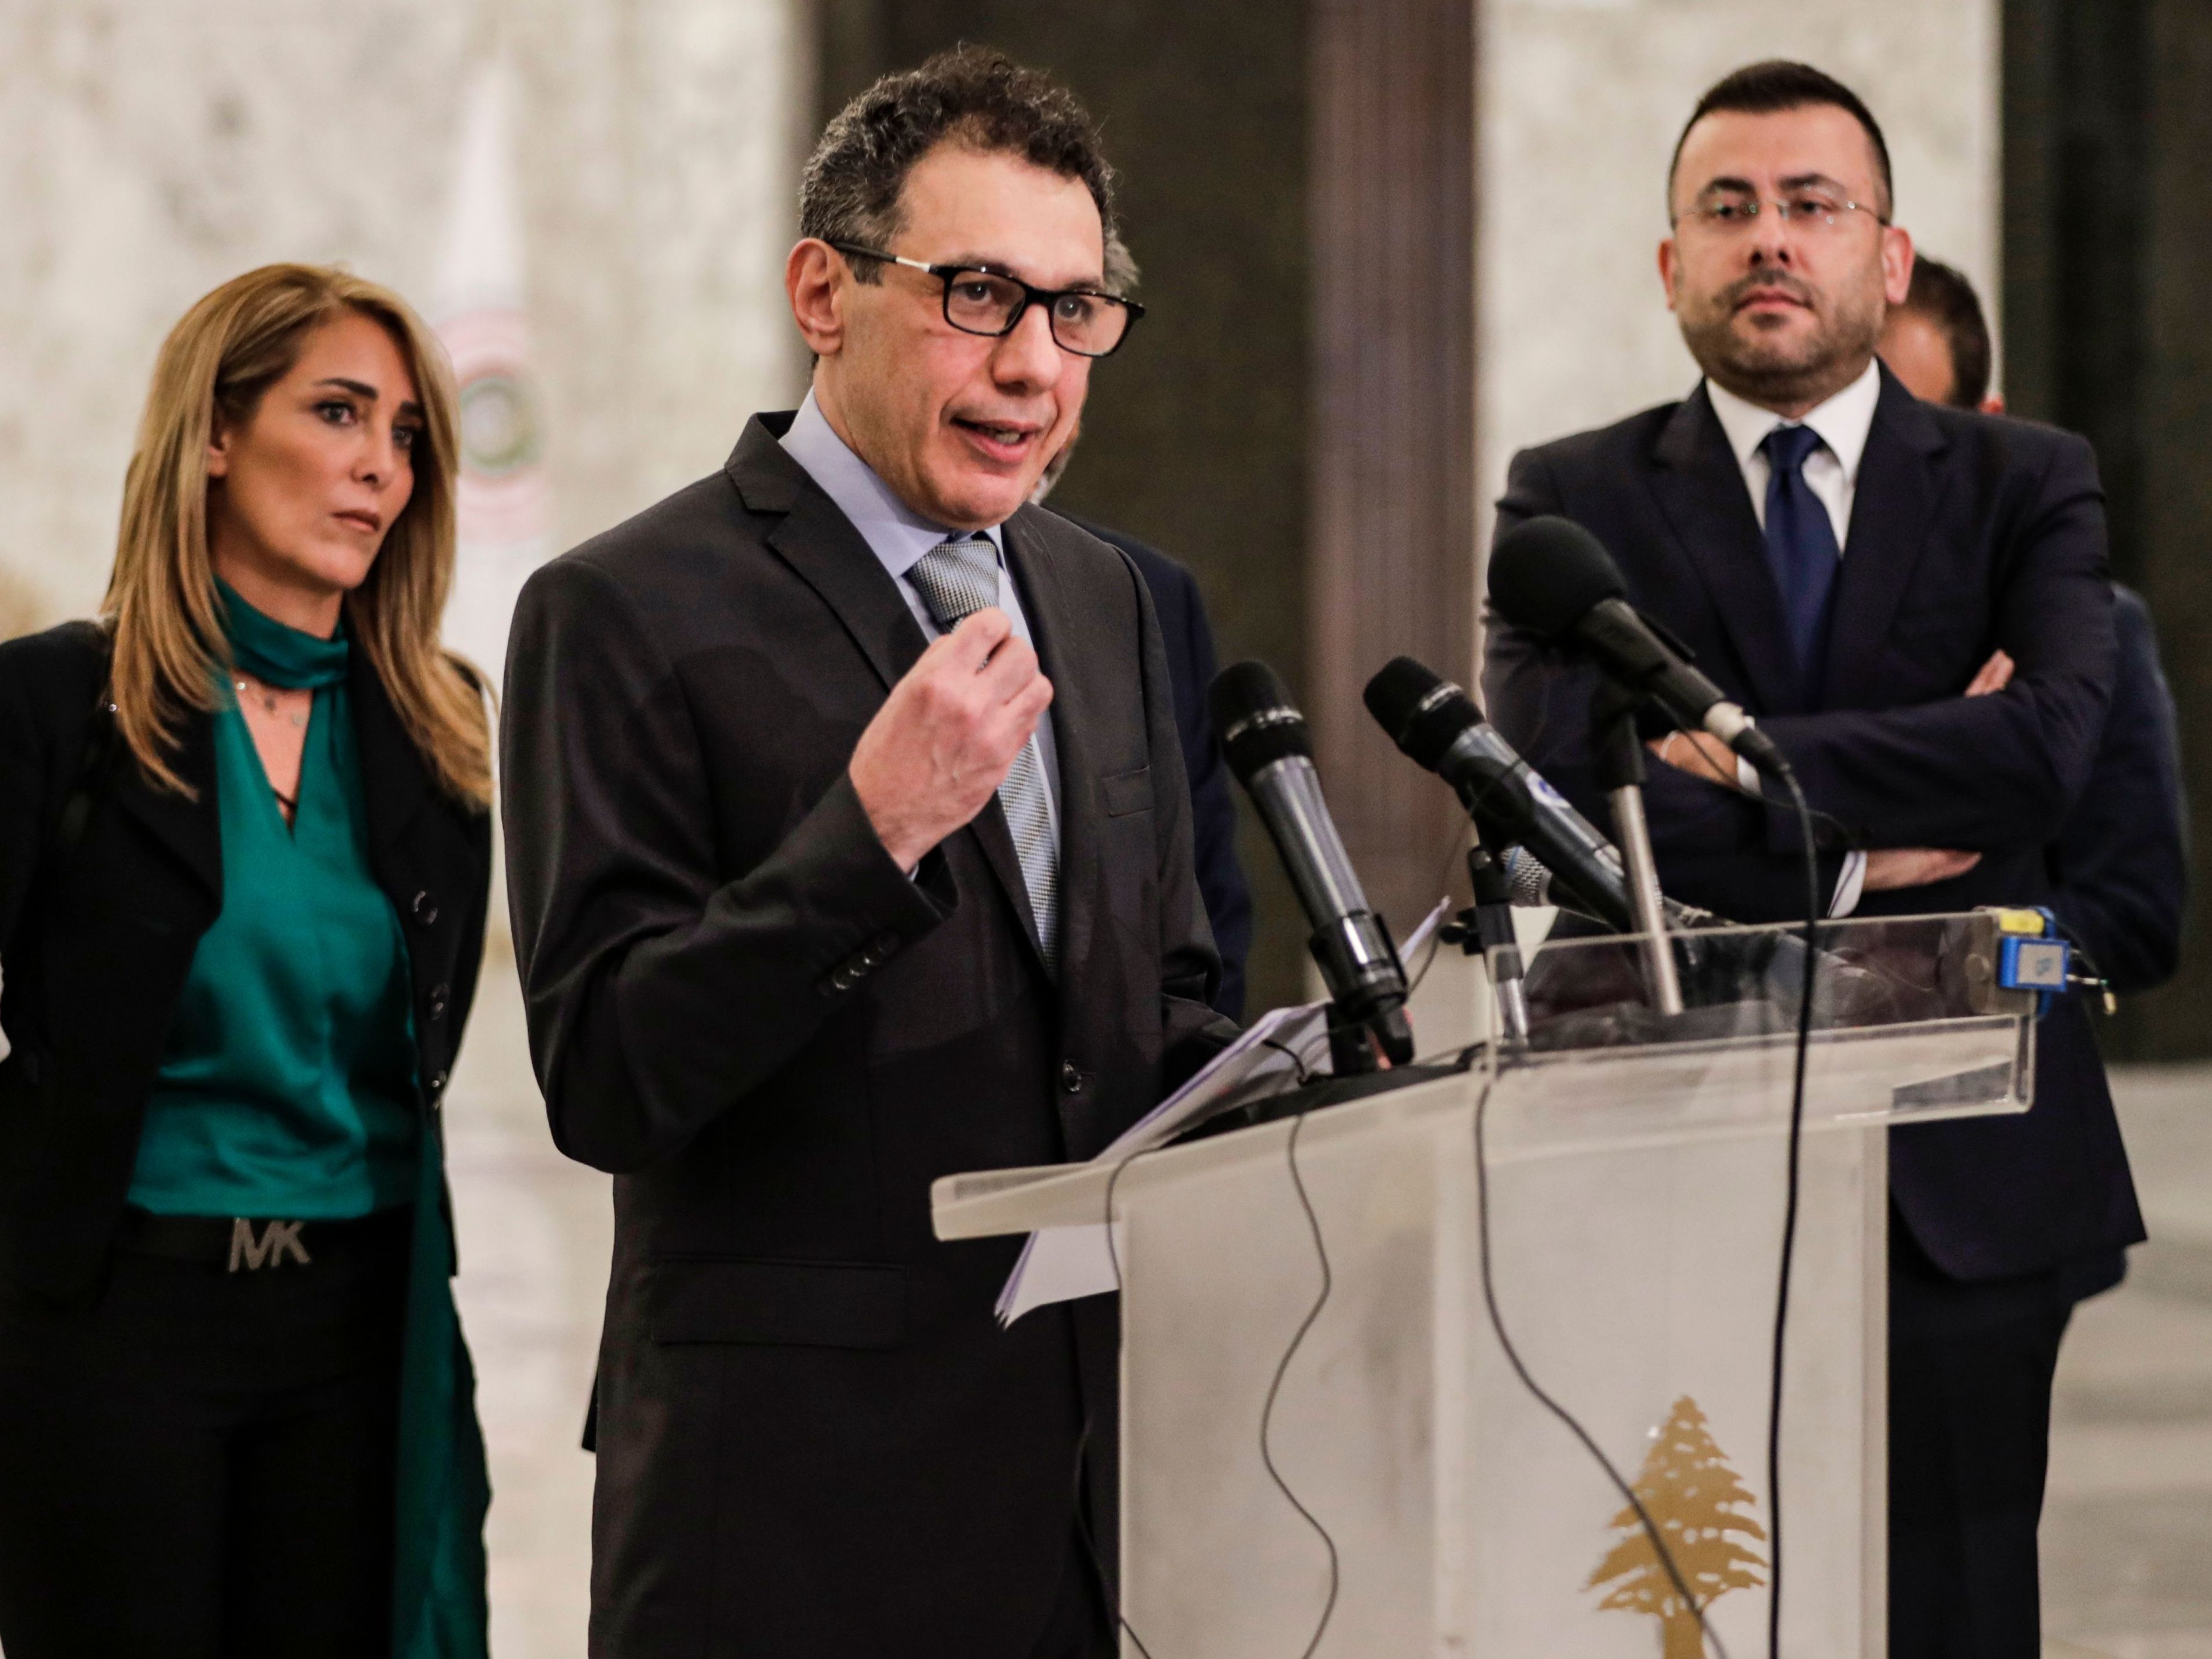 U.S. Resident Imprisoned In Iran On Spying Charges Returns To America